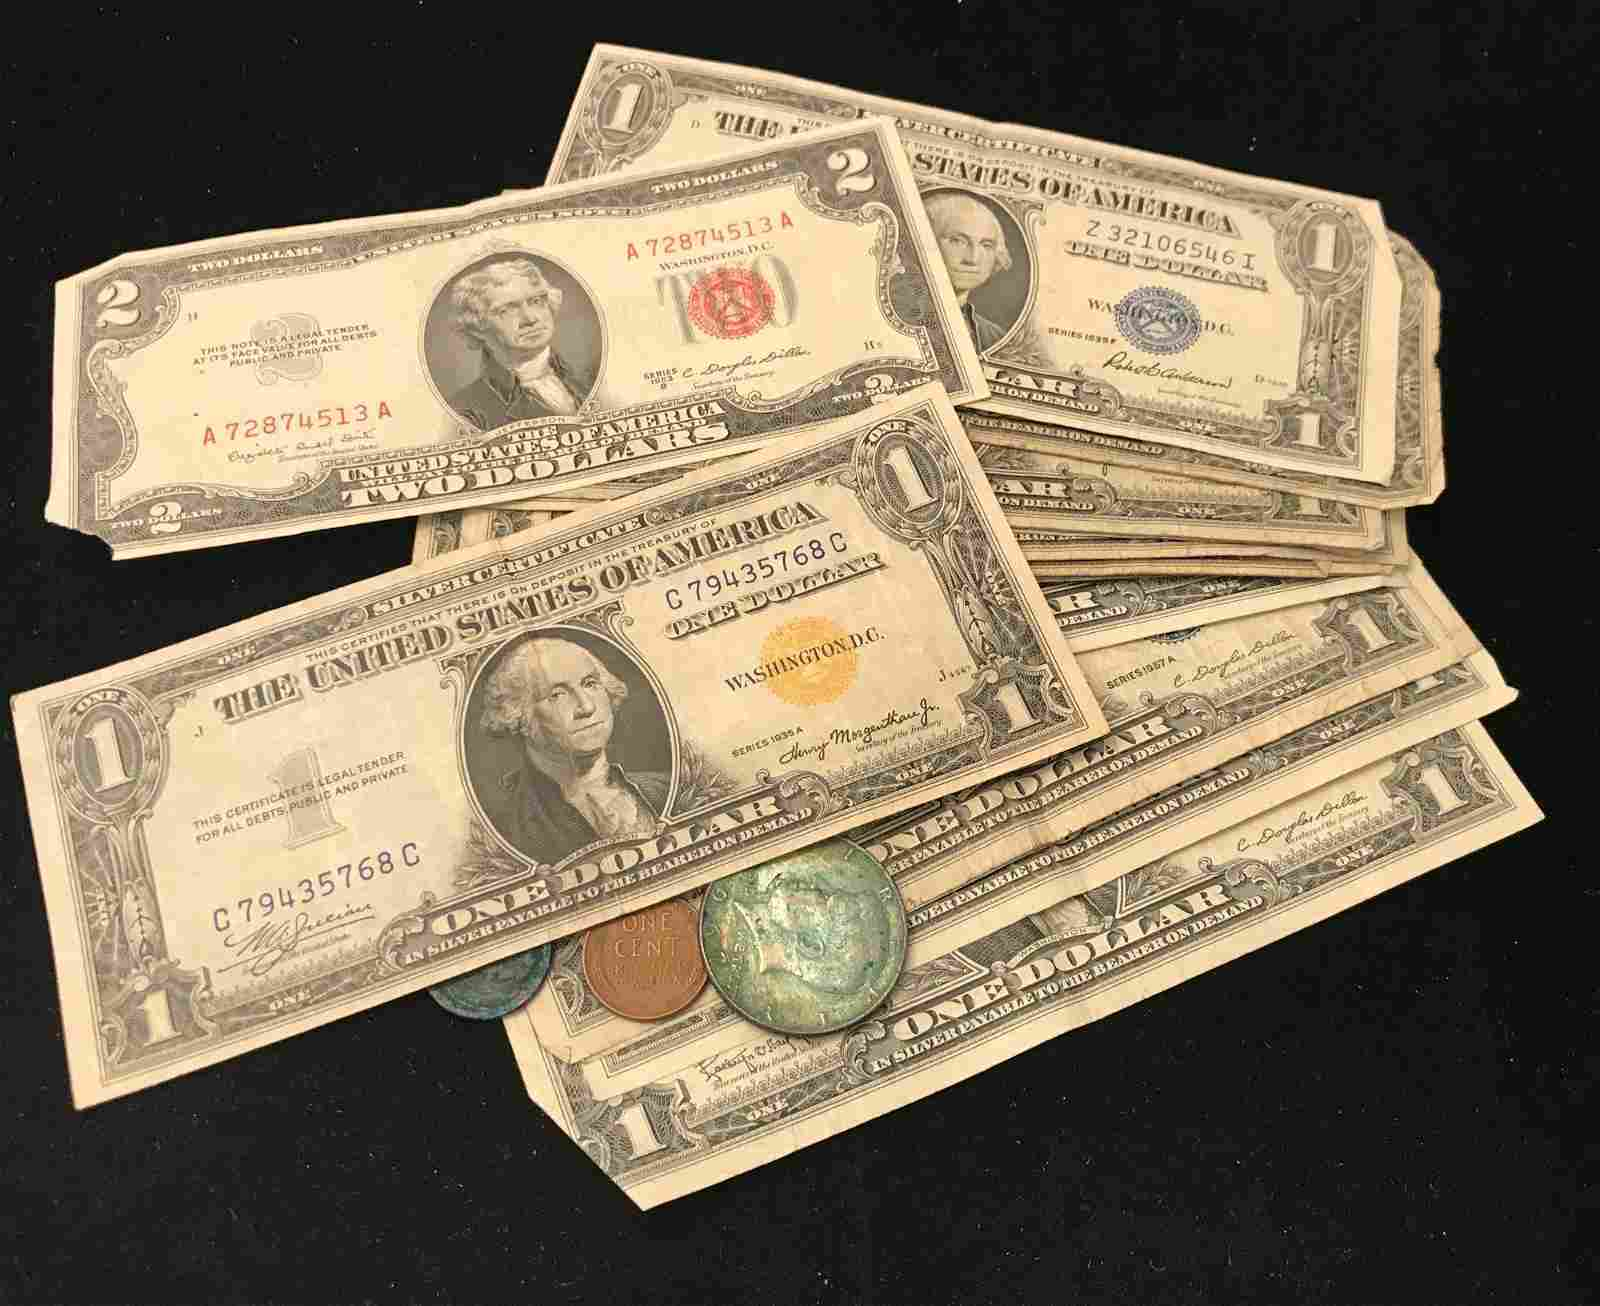 U.S. CURRENCY INCLUDING SERIES 1953 TWO DOLLAR RED SEAL